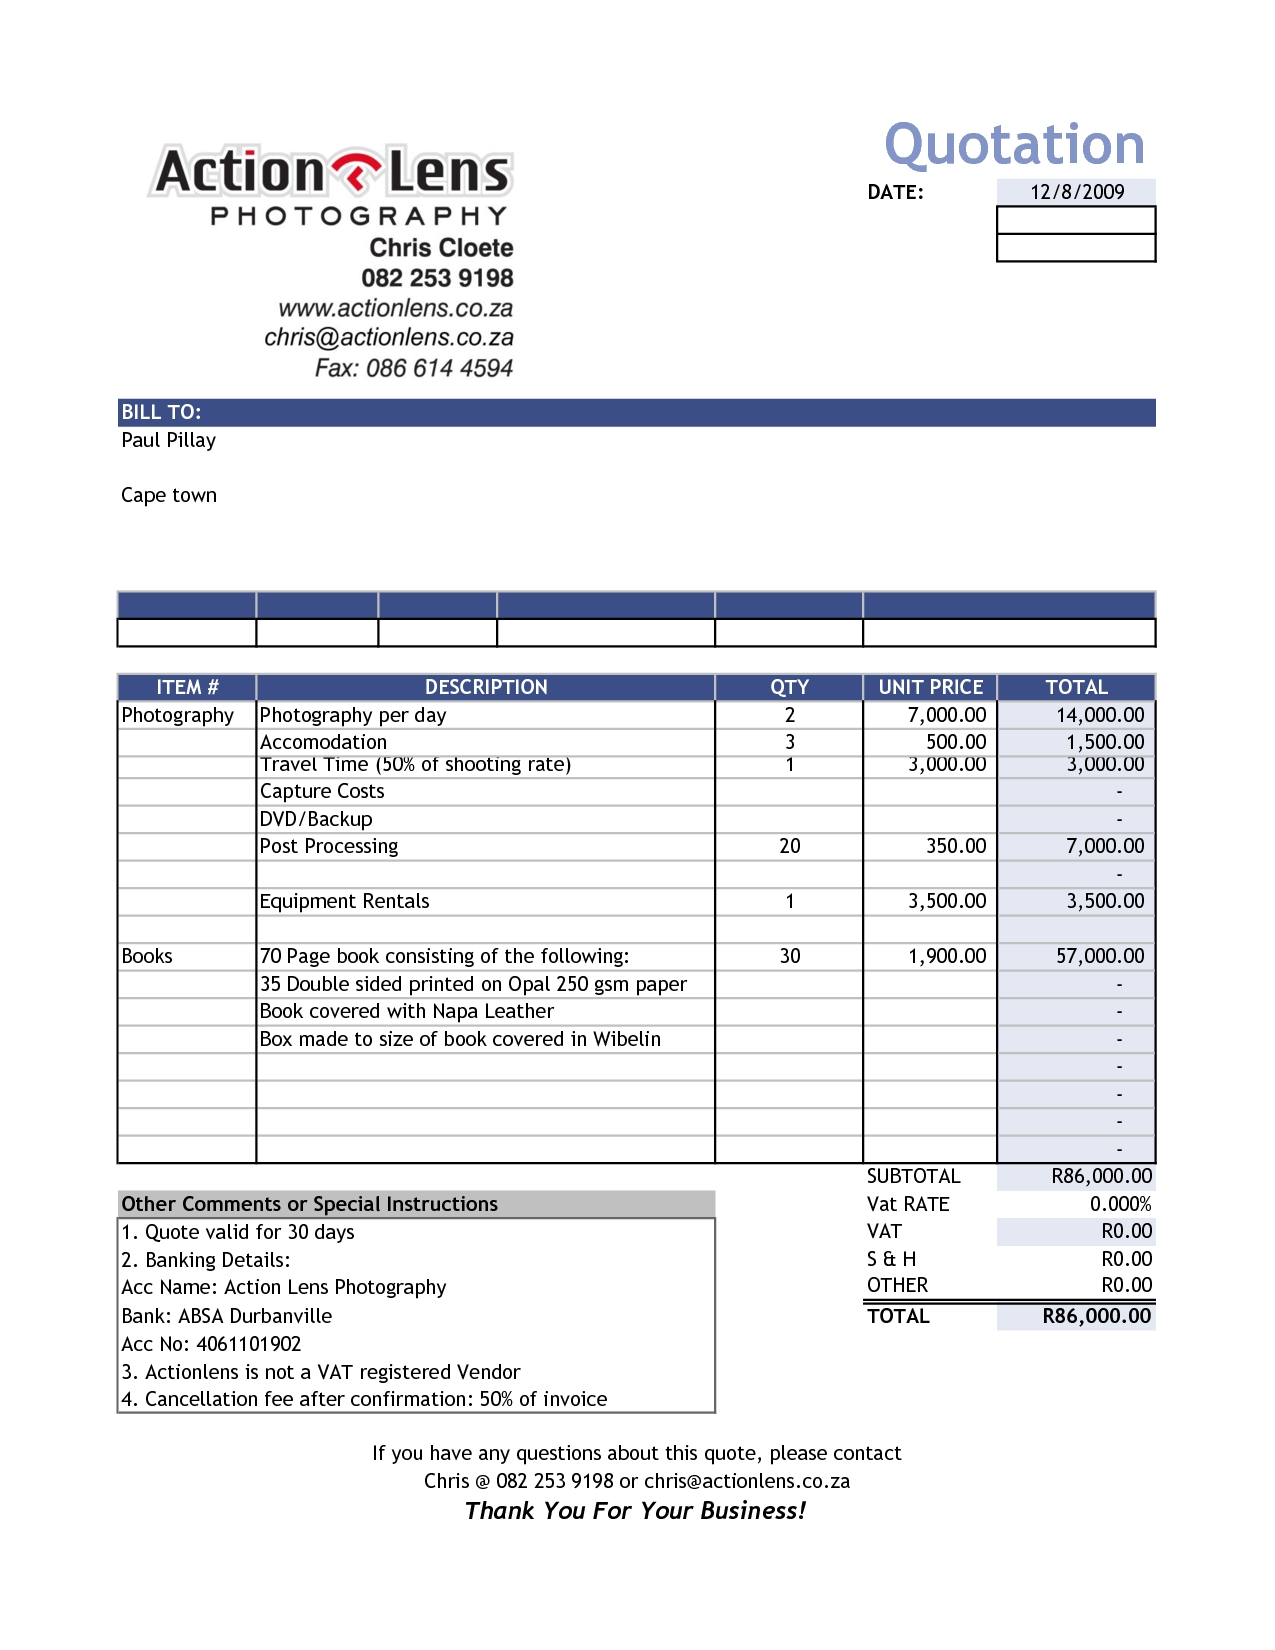 sales invoice template excel sales invoice template invoice invoice for sale